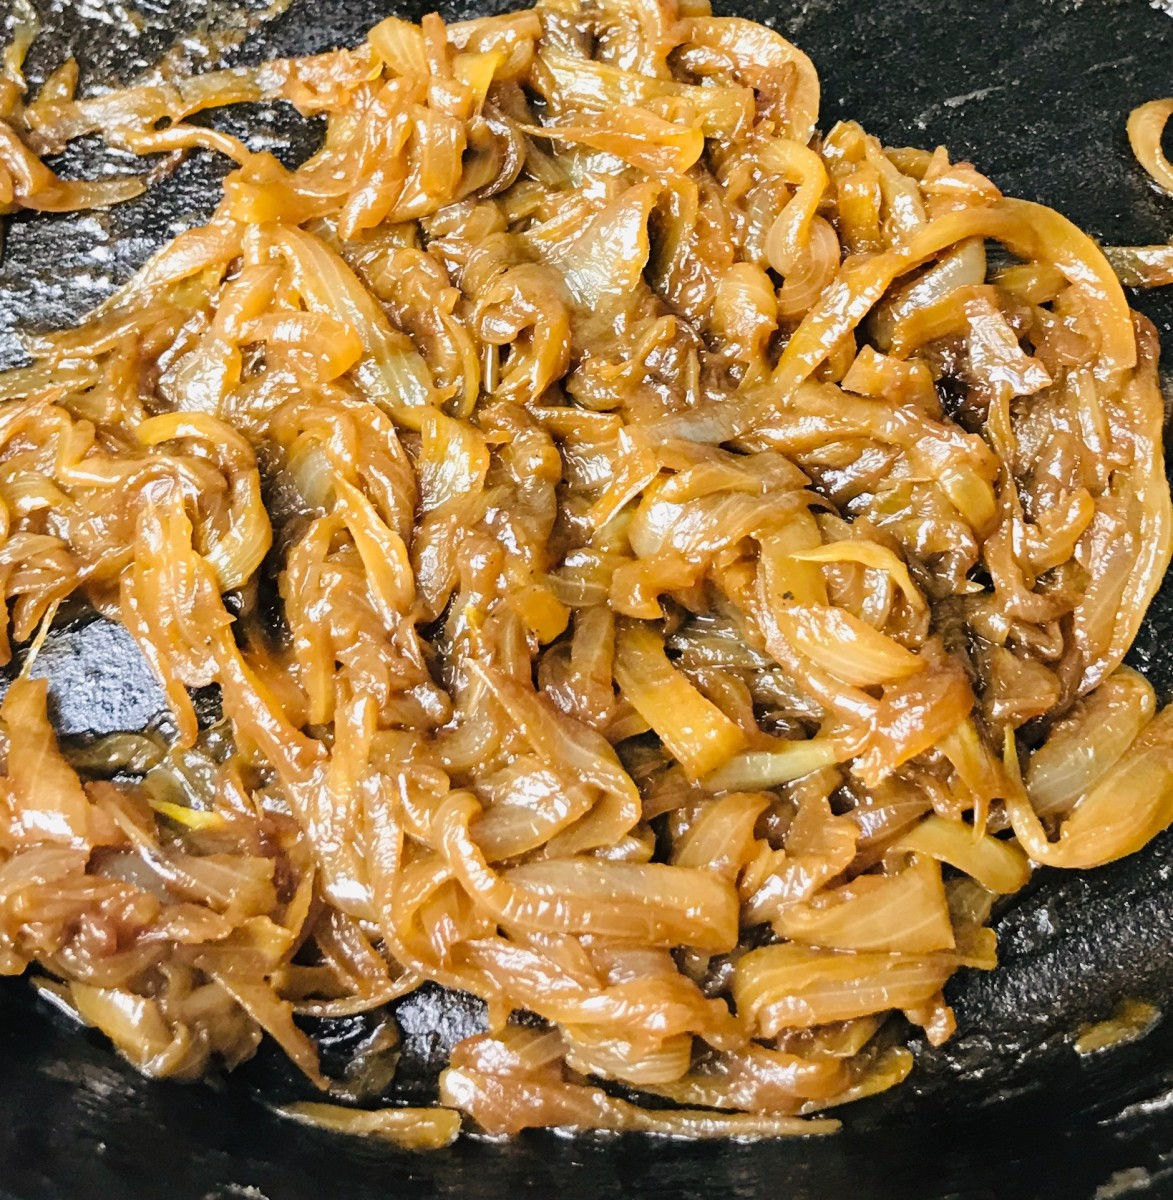 Caramelized onions are a thing of beauty.